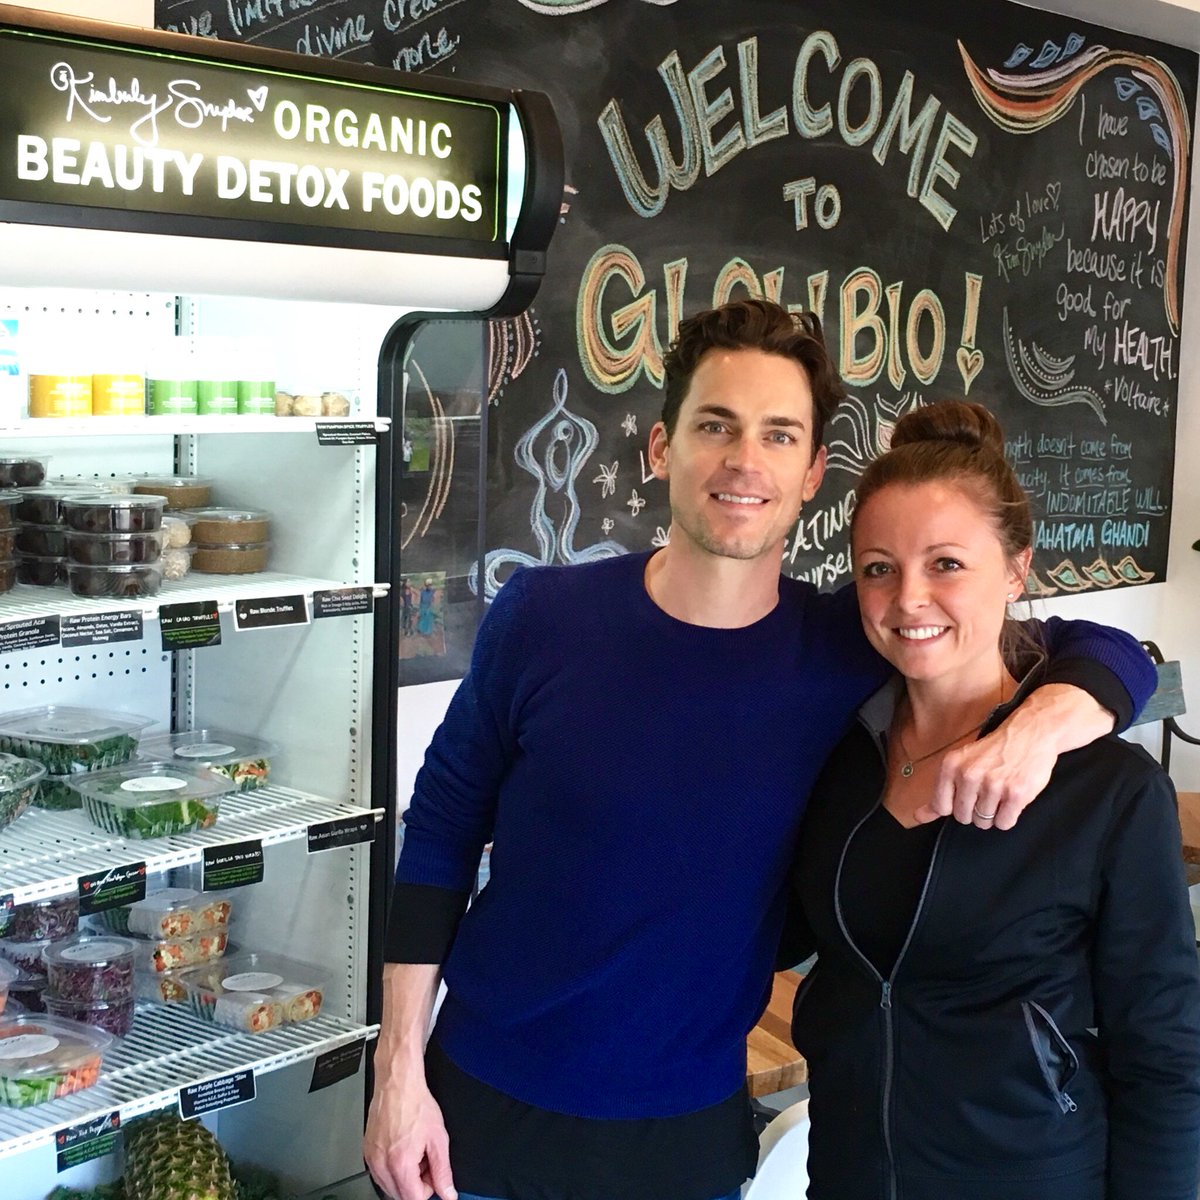 We love when @MattBomer stops by @GlowBio! Summer is about to be in full swing- considering a juice cleanse? ;) https://t.co/5fP65COx2a